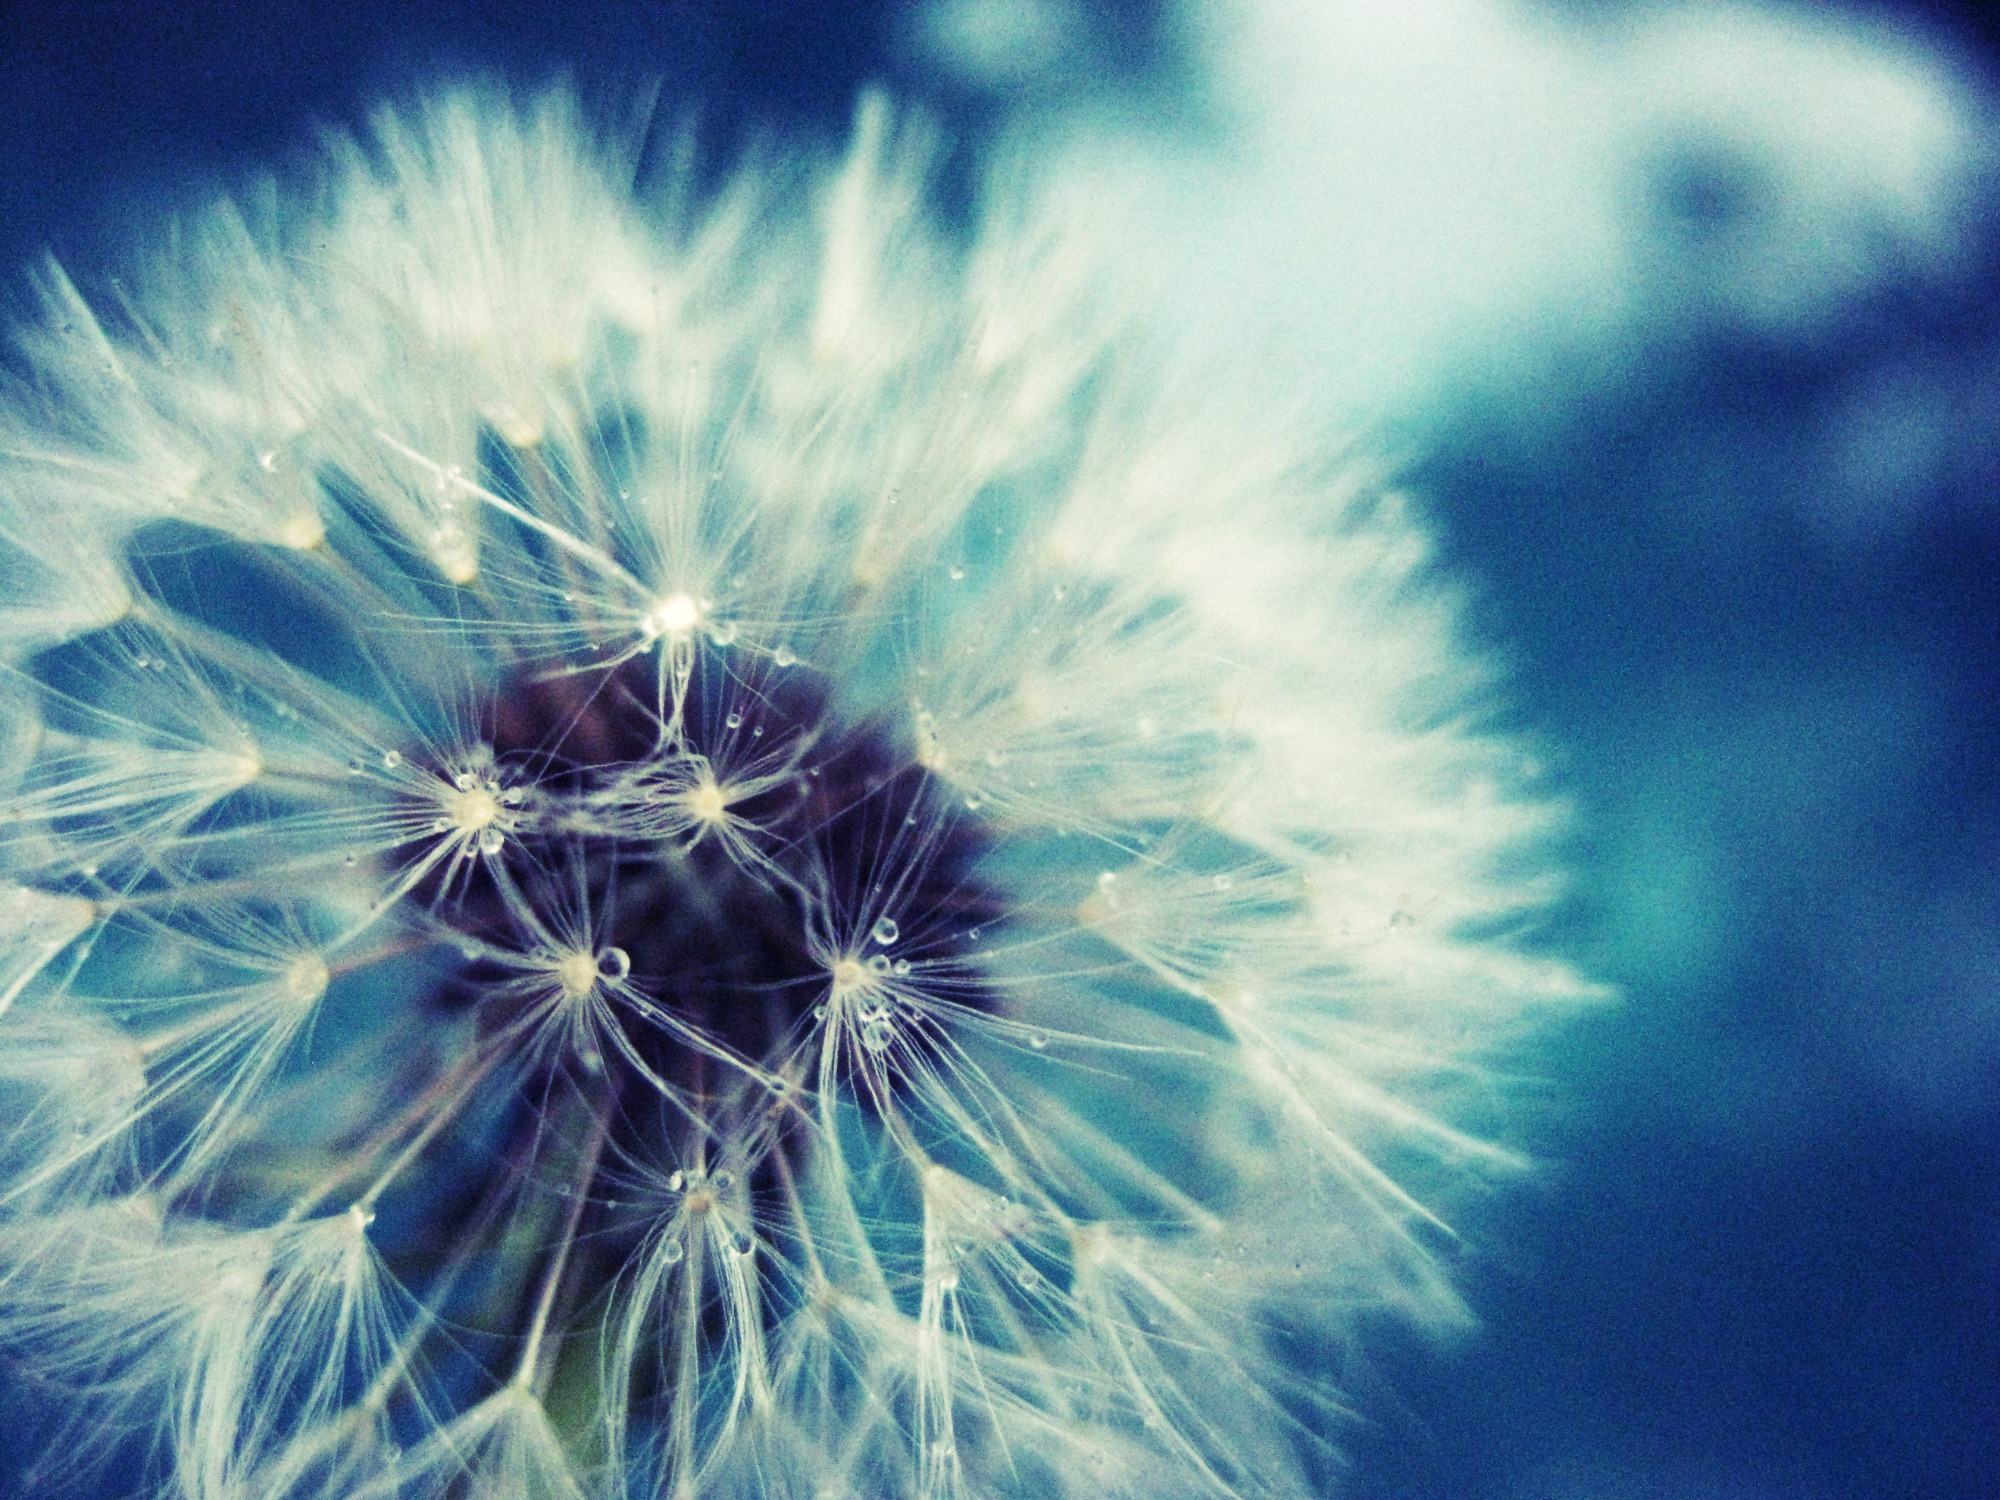 Pics Photos   Dandelion Flower Background Widescreen 2000x1500